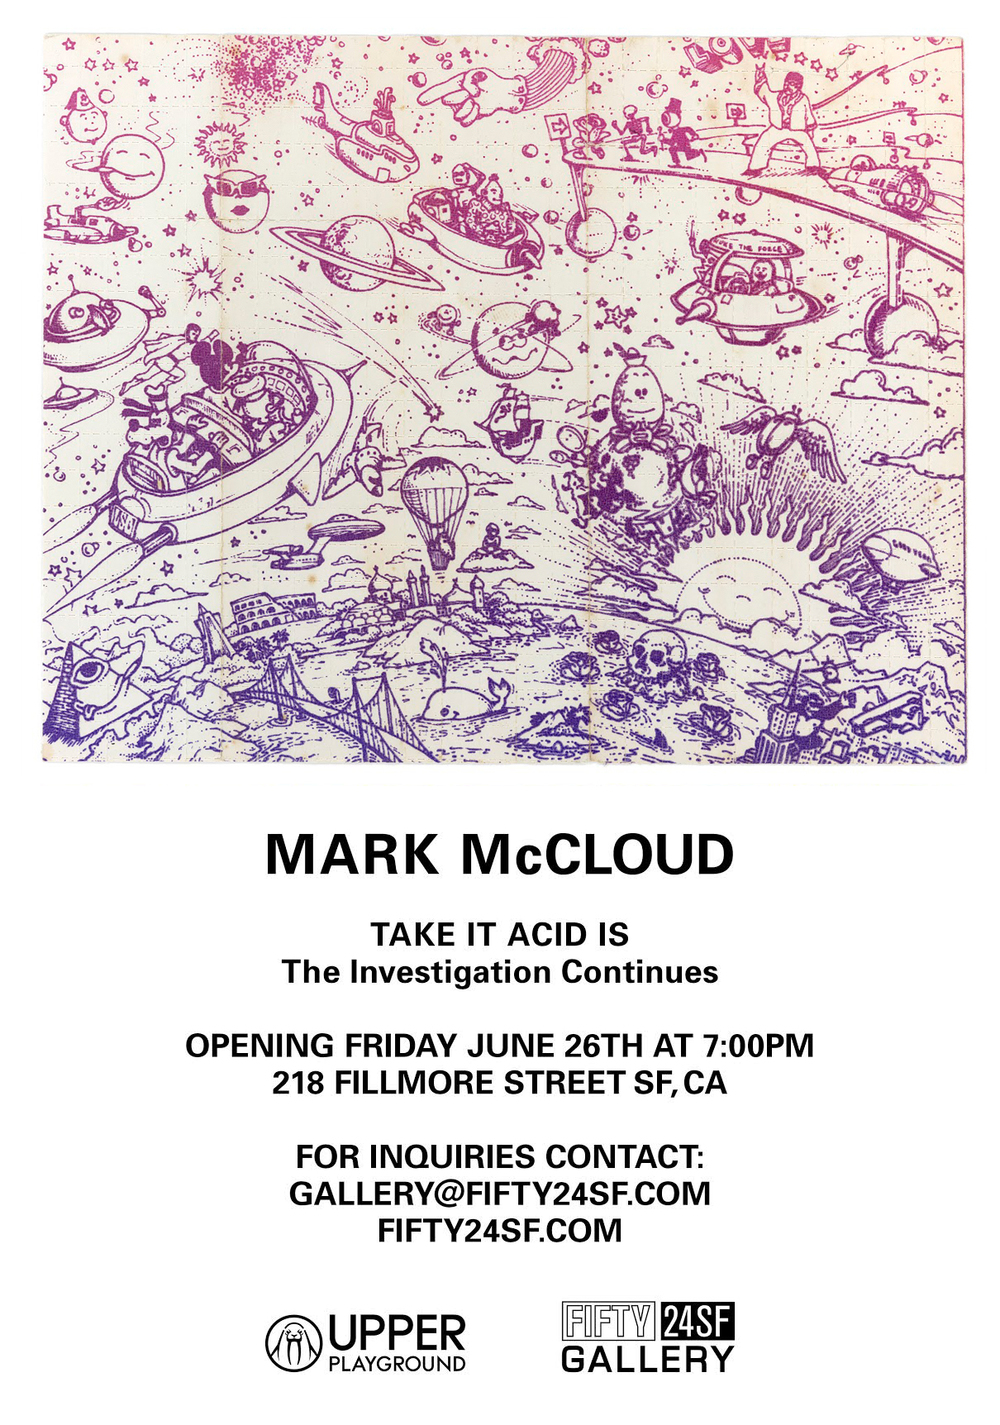 fifty24sf-mark-mccloud-acid-upper-playground.jpeg